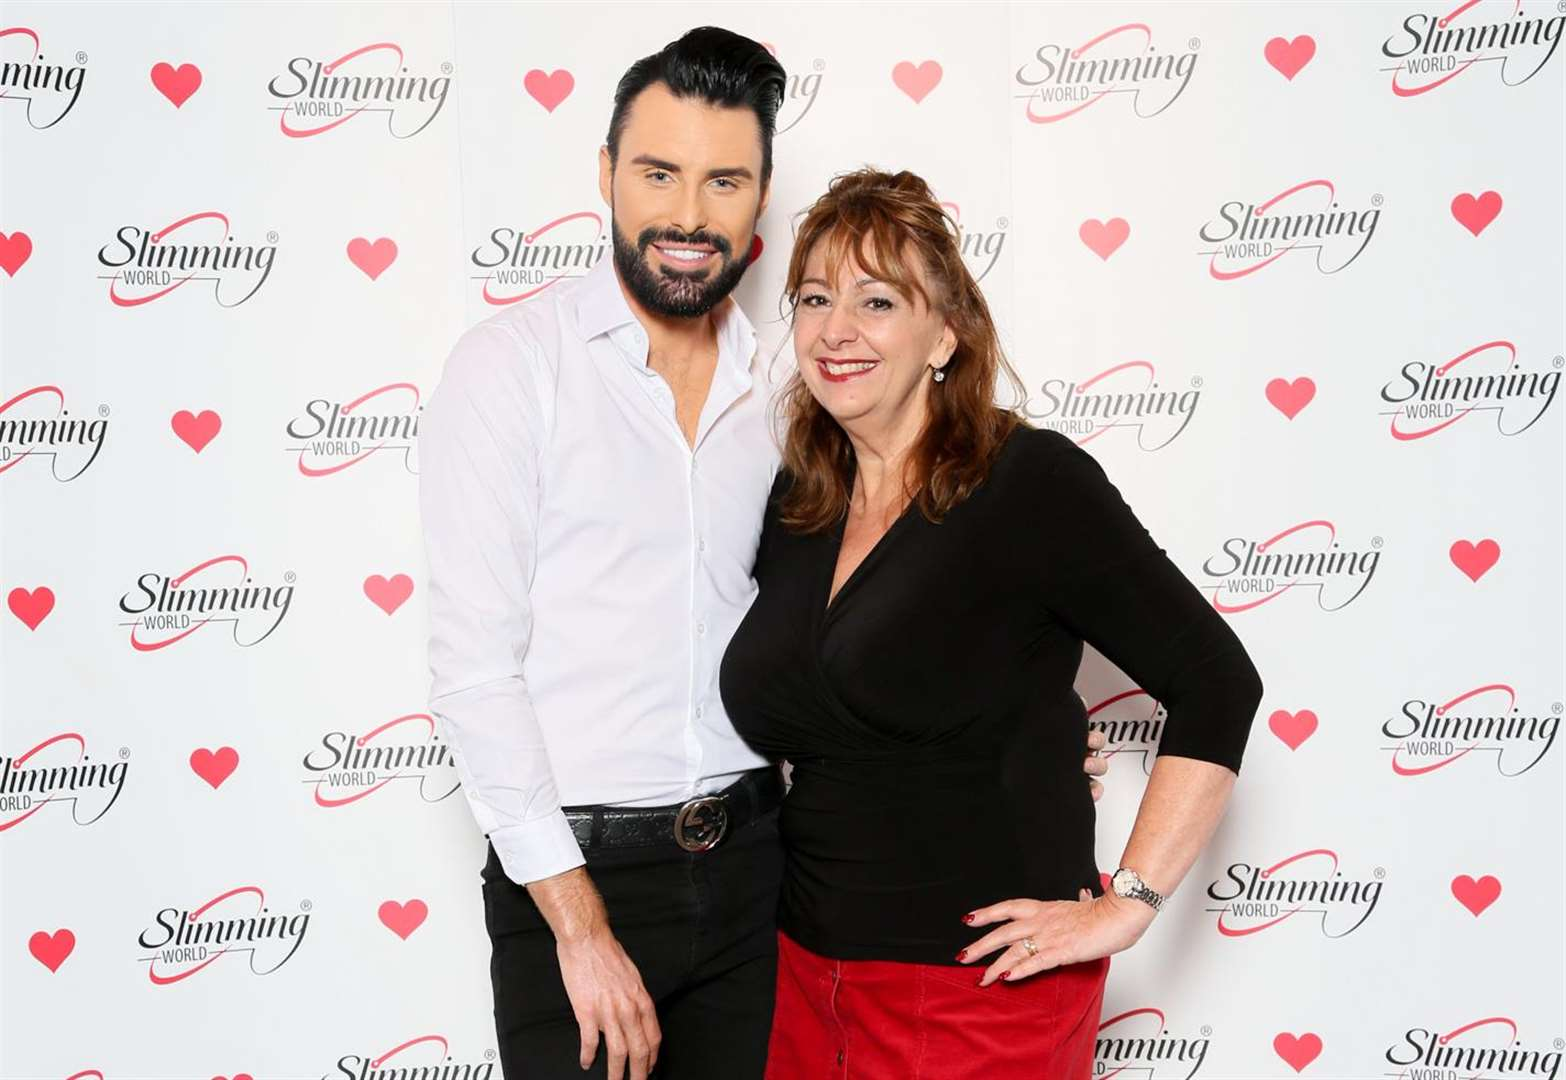 Slimming World consultant from Stortford enjoys brush with TV celebrity